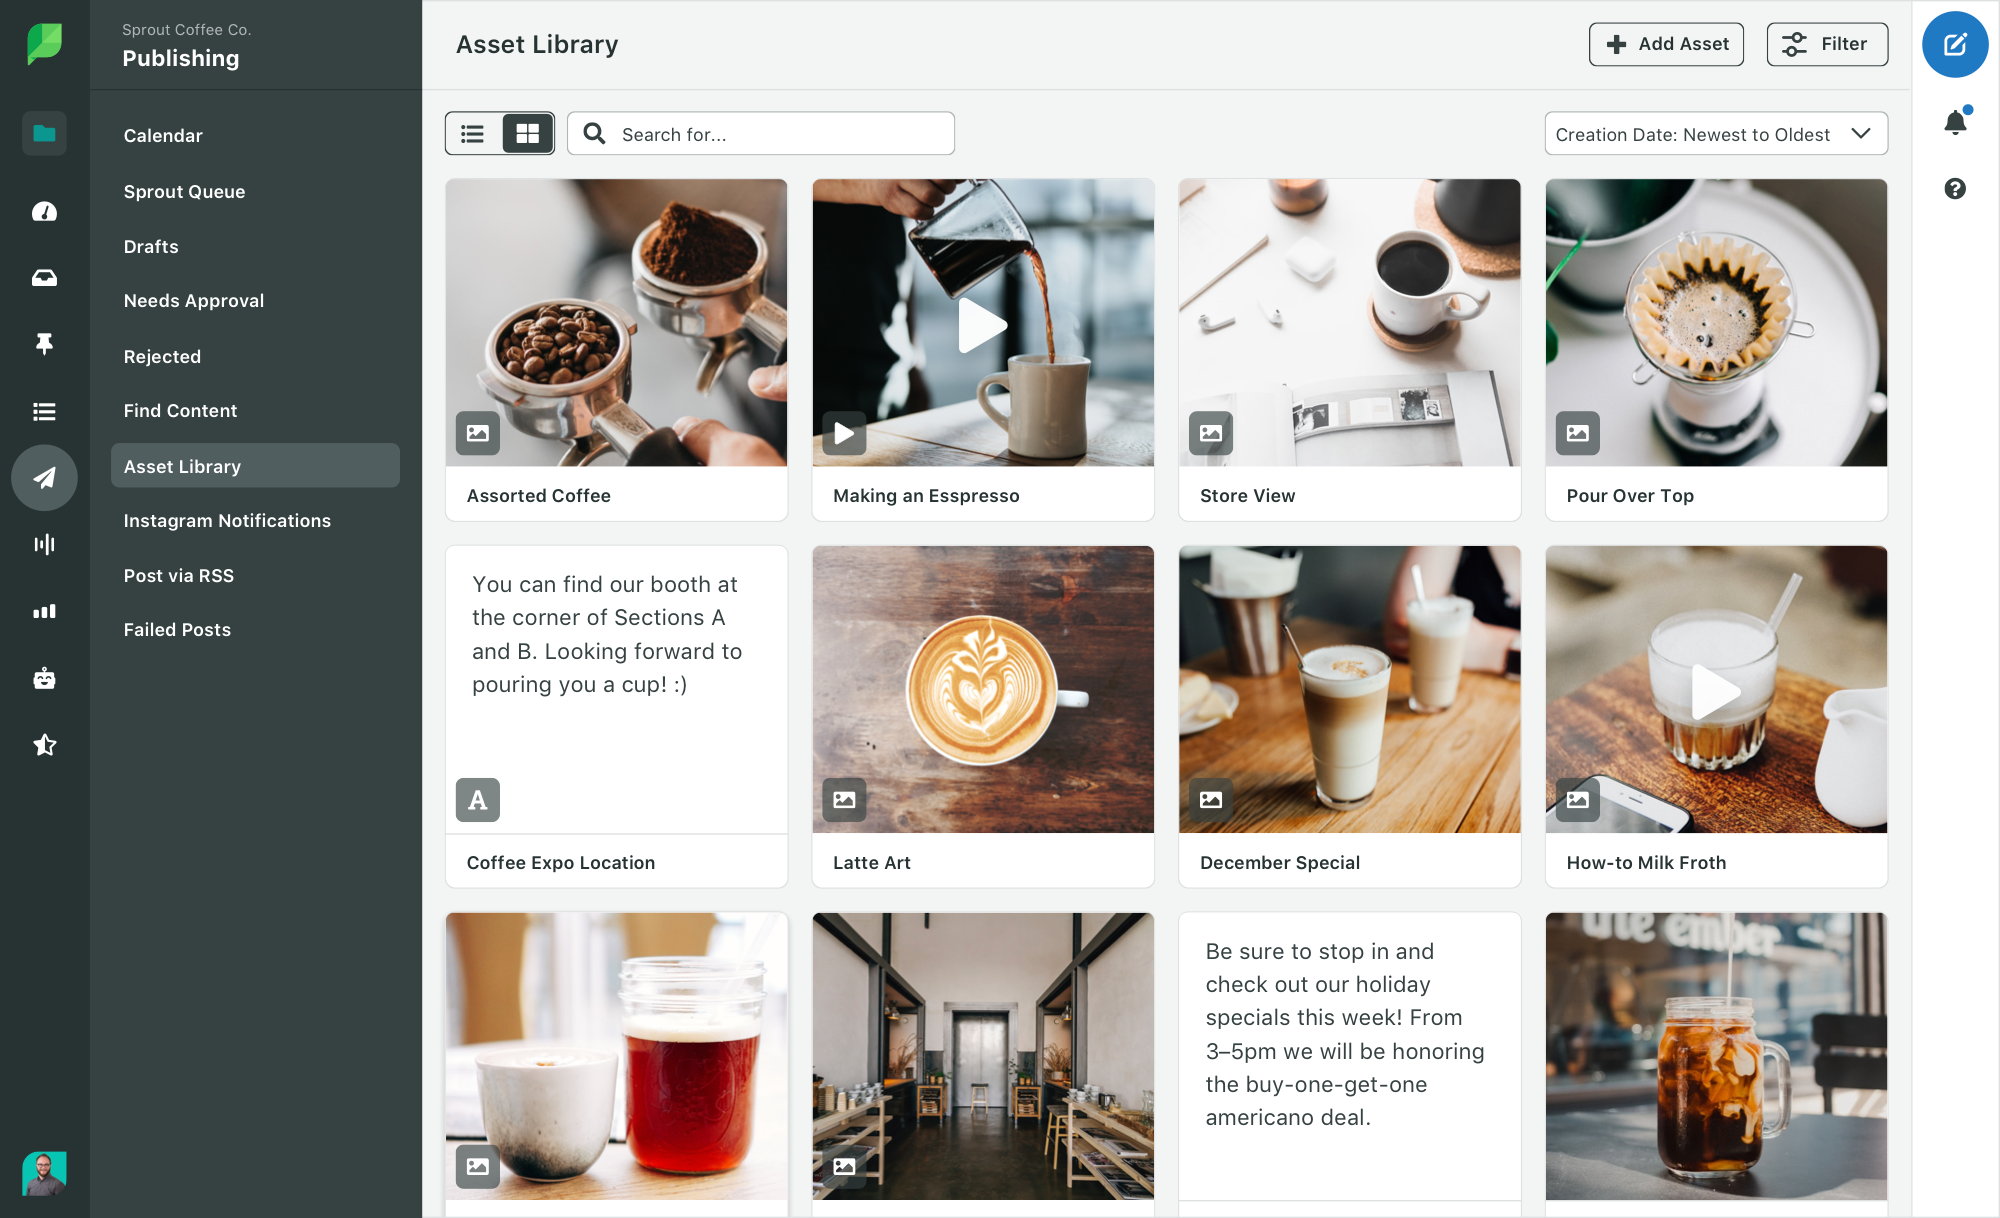 Sprout Social Asset Library allows you to curate approved imagery and messages for use